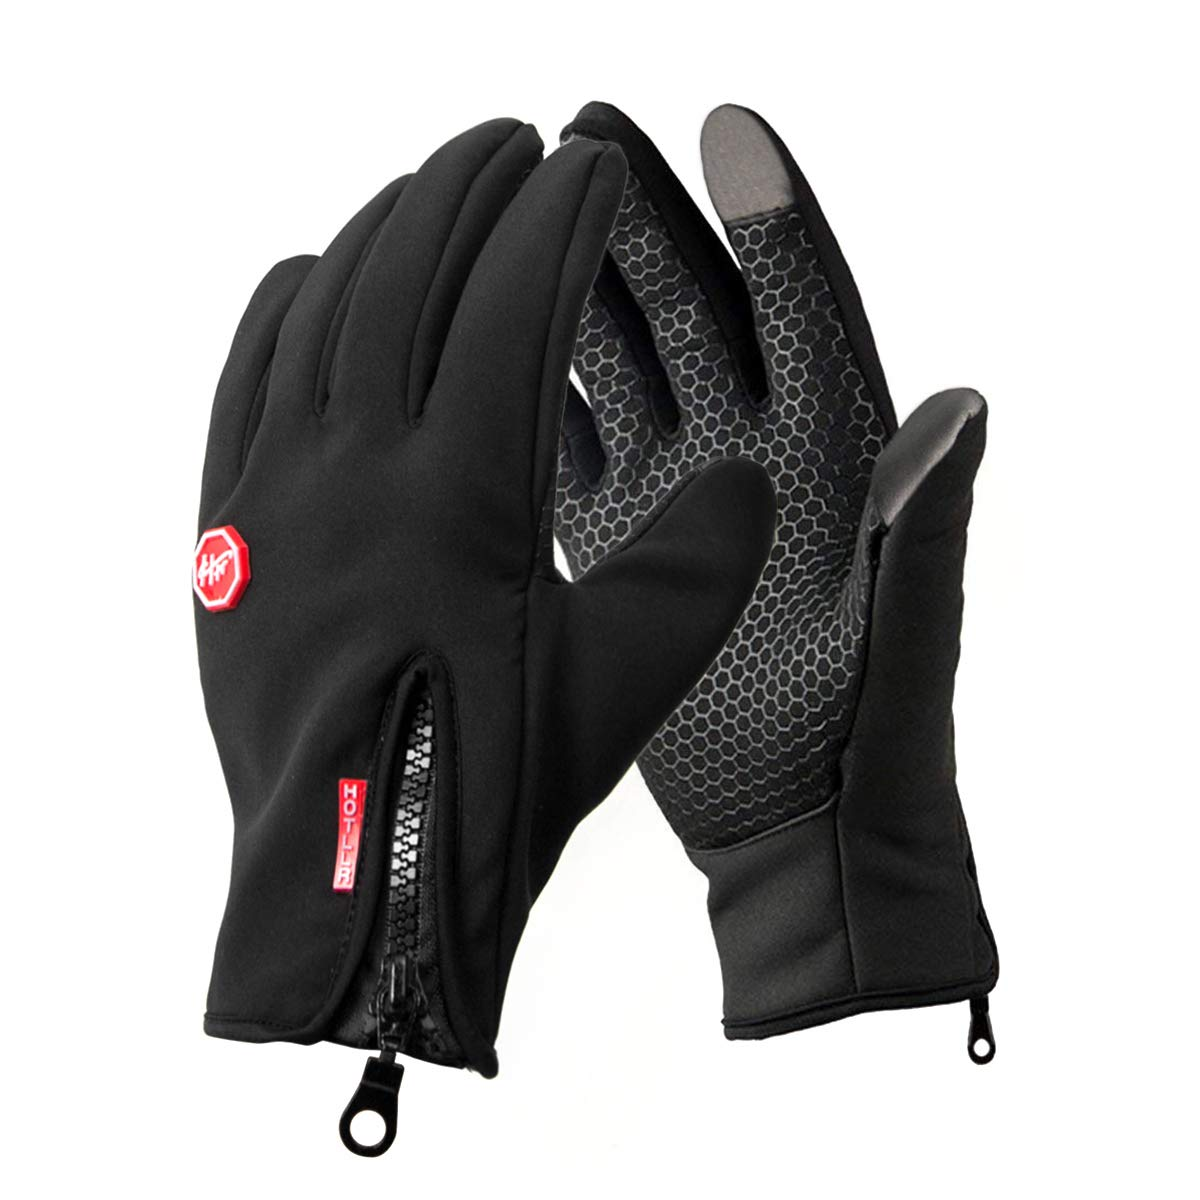 Men Cycling Gloves Full Finger Winter Fleece Bike Bicycle Gloves Touchscreen Hot